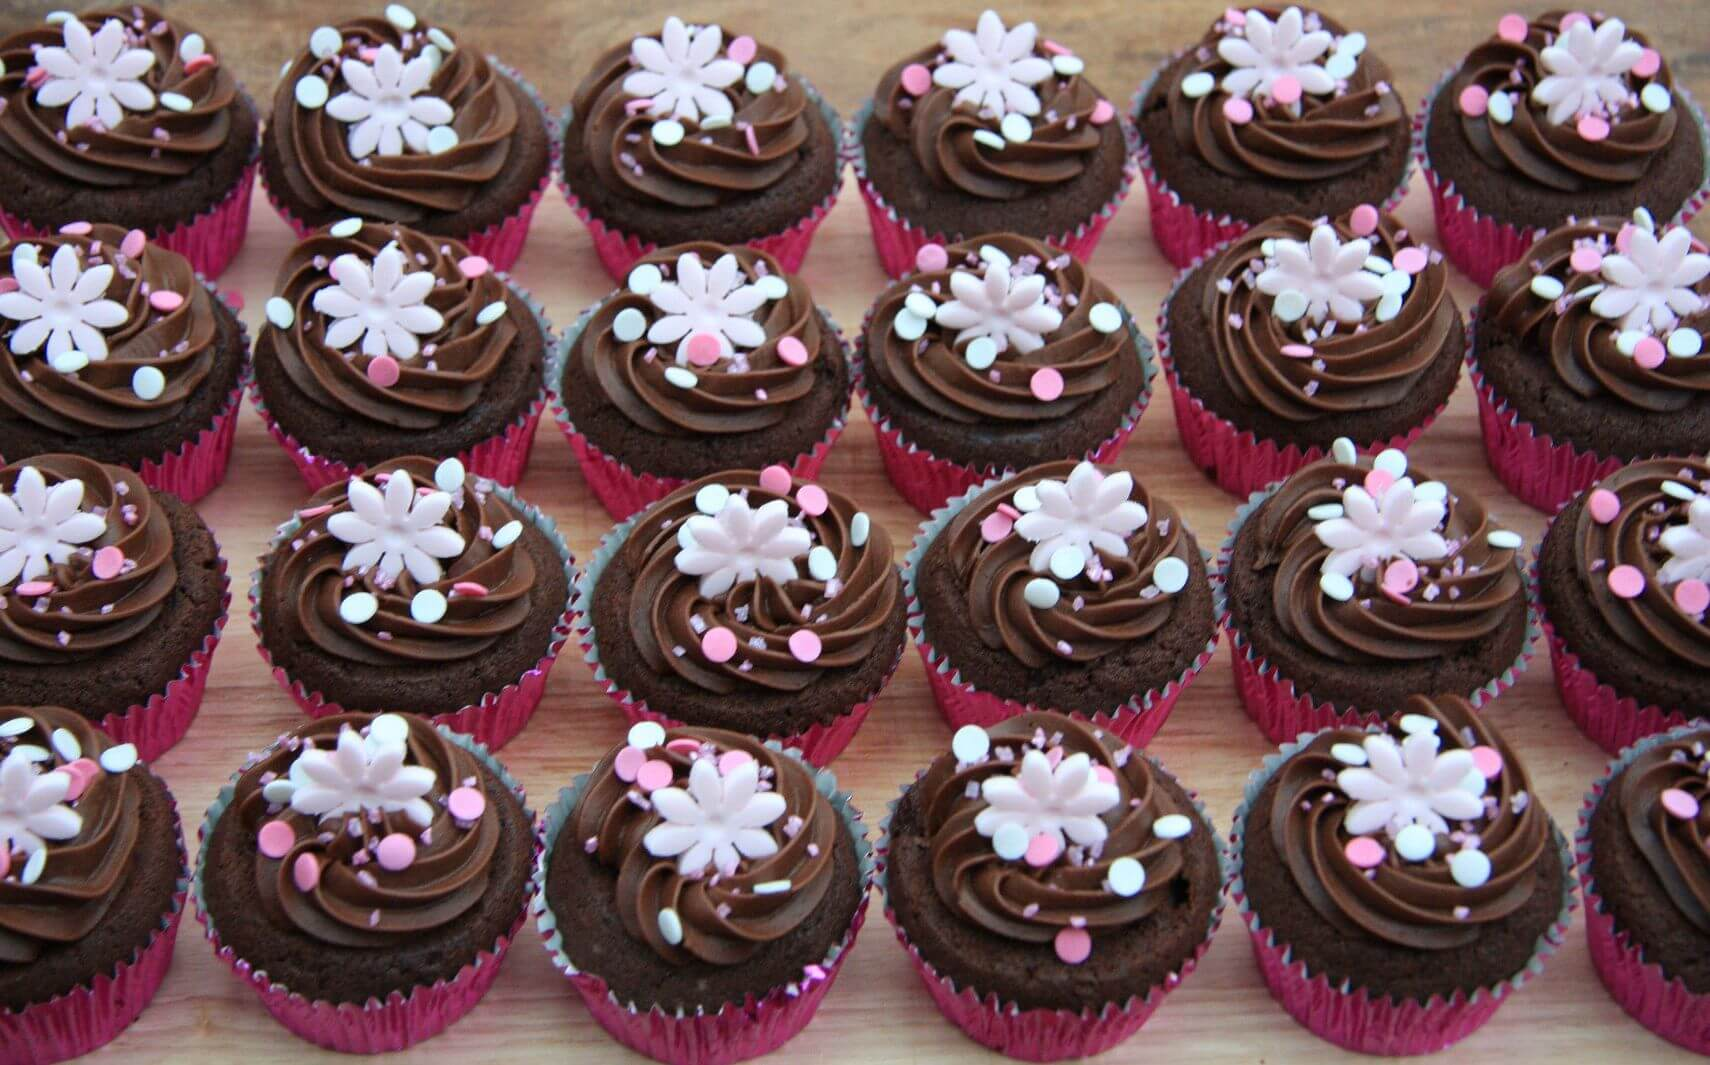 24 Piece Flower Design Chocolate Cup Cakes